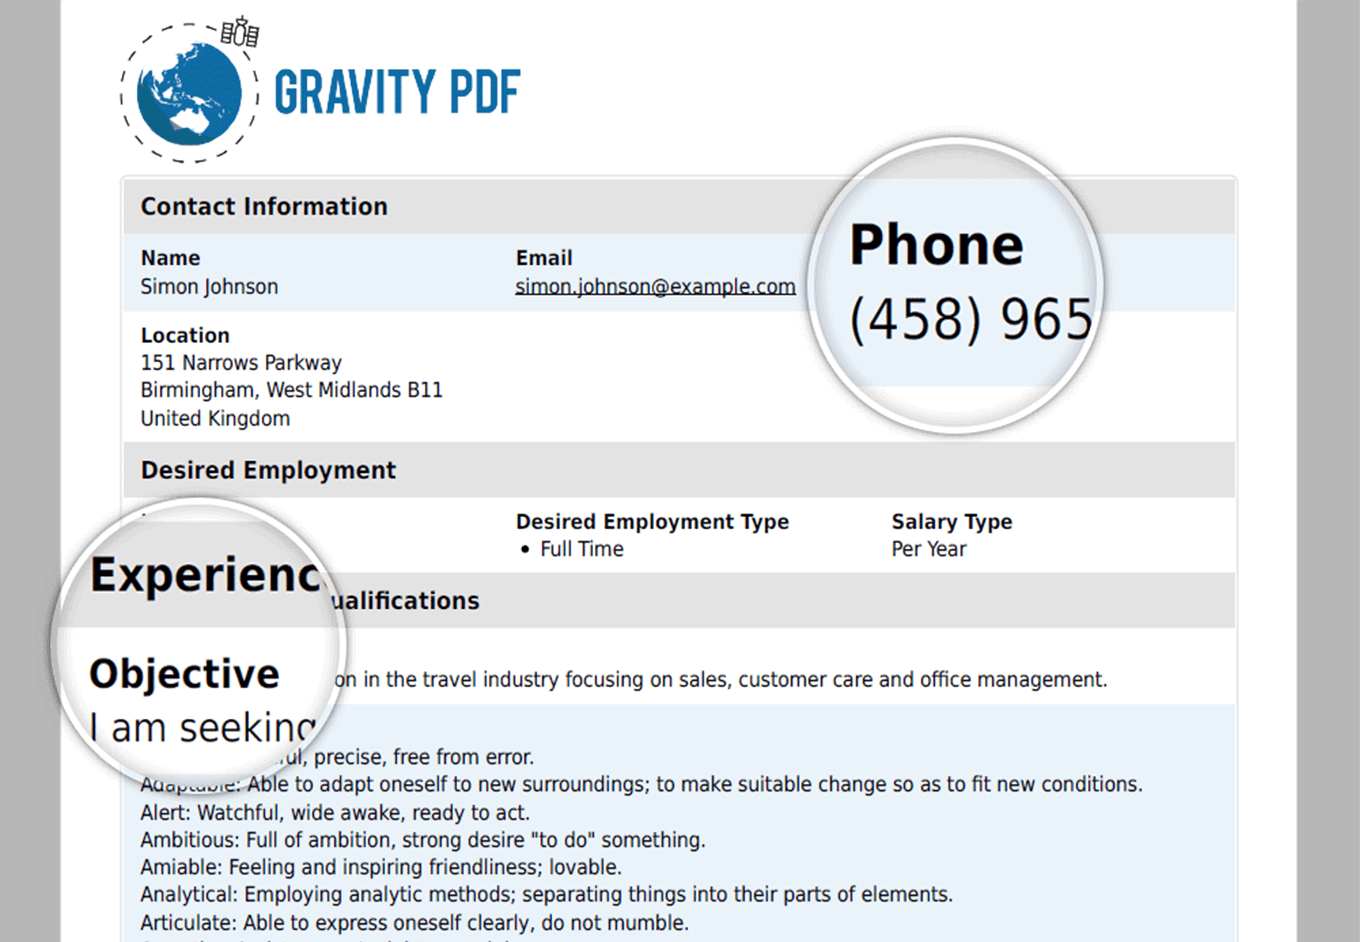 Gravity PDF Screenshot: Focus Template